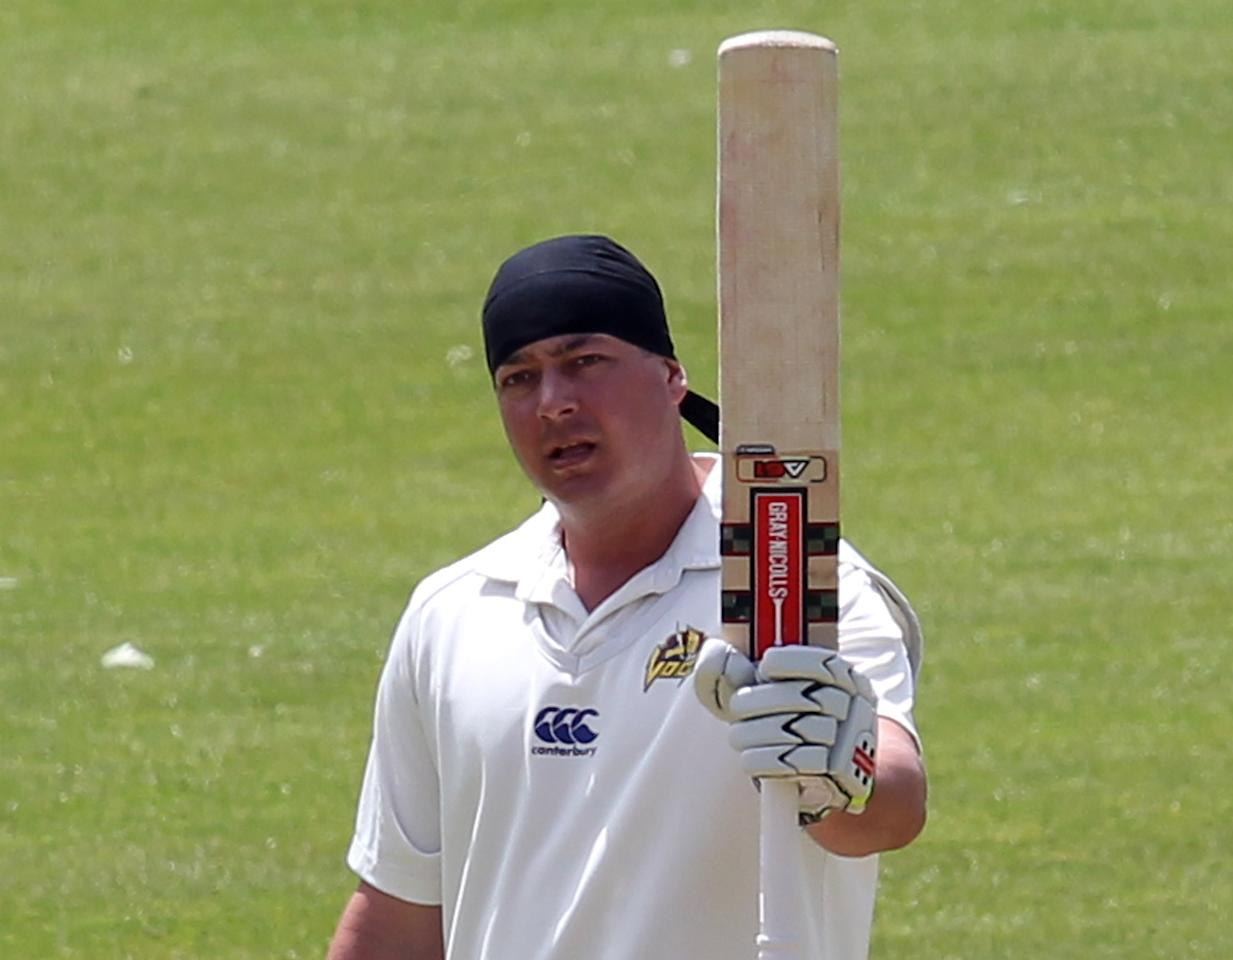 DUNEDIN, NEW ZEALAND - DECEMBER 22:  Jesse Ryder of Otago acknowledges the crowd and his team-mates after scoring 100 runs during day three of the Plunket Shield match between Otago and Central Districts on December 22, 2013 in Dunedin, New Zealand.  (Photo by Rob Jefferies/Getty Images)